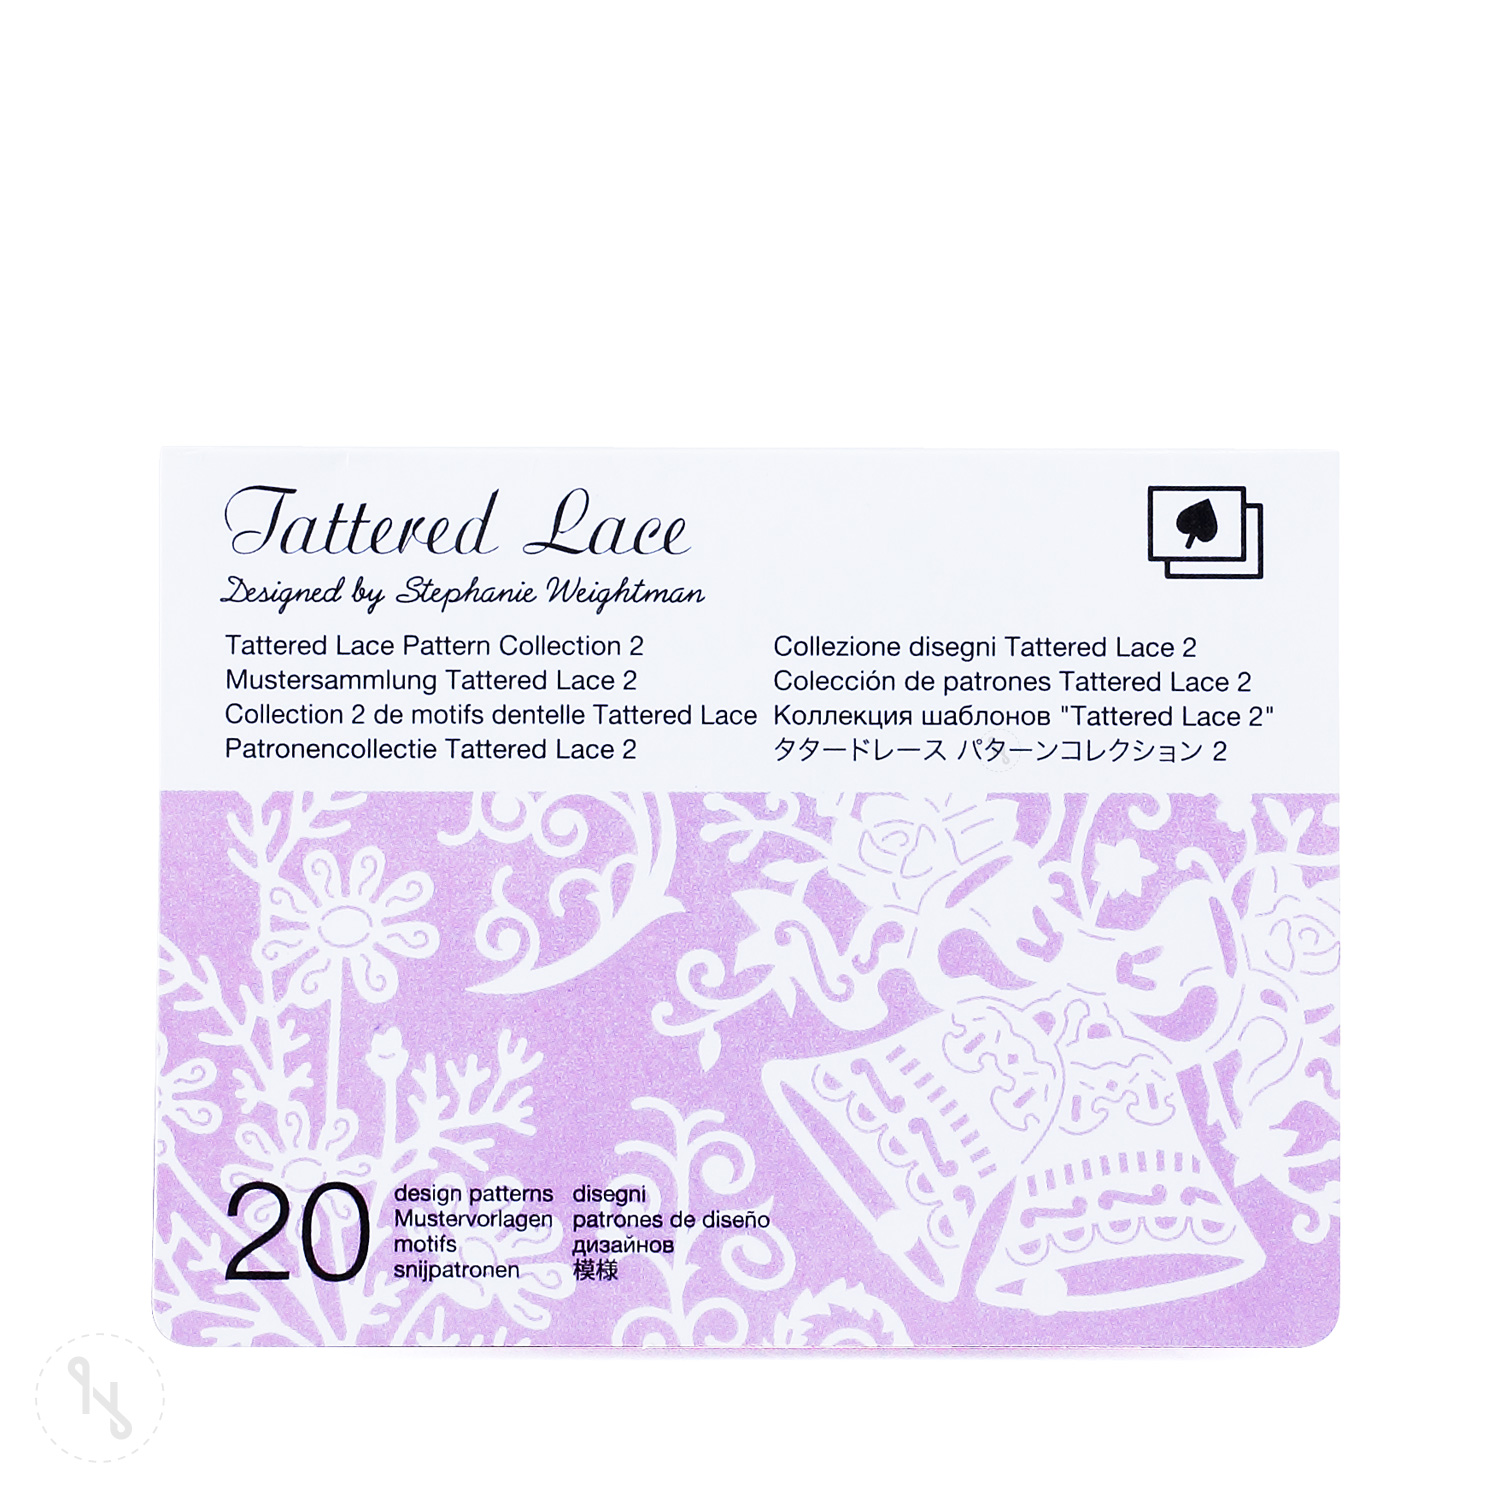 BROTHER Tattered Lace Pattern Collection 2 - 20 Designs